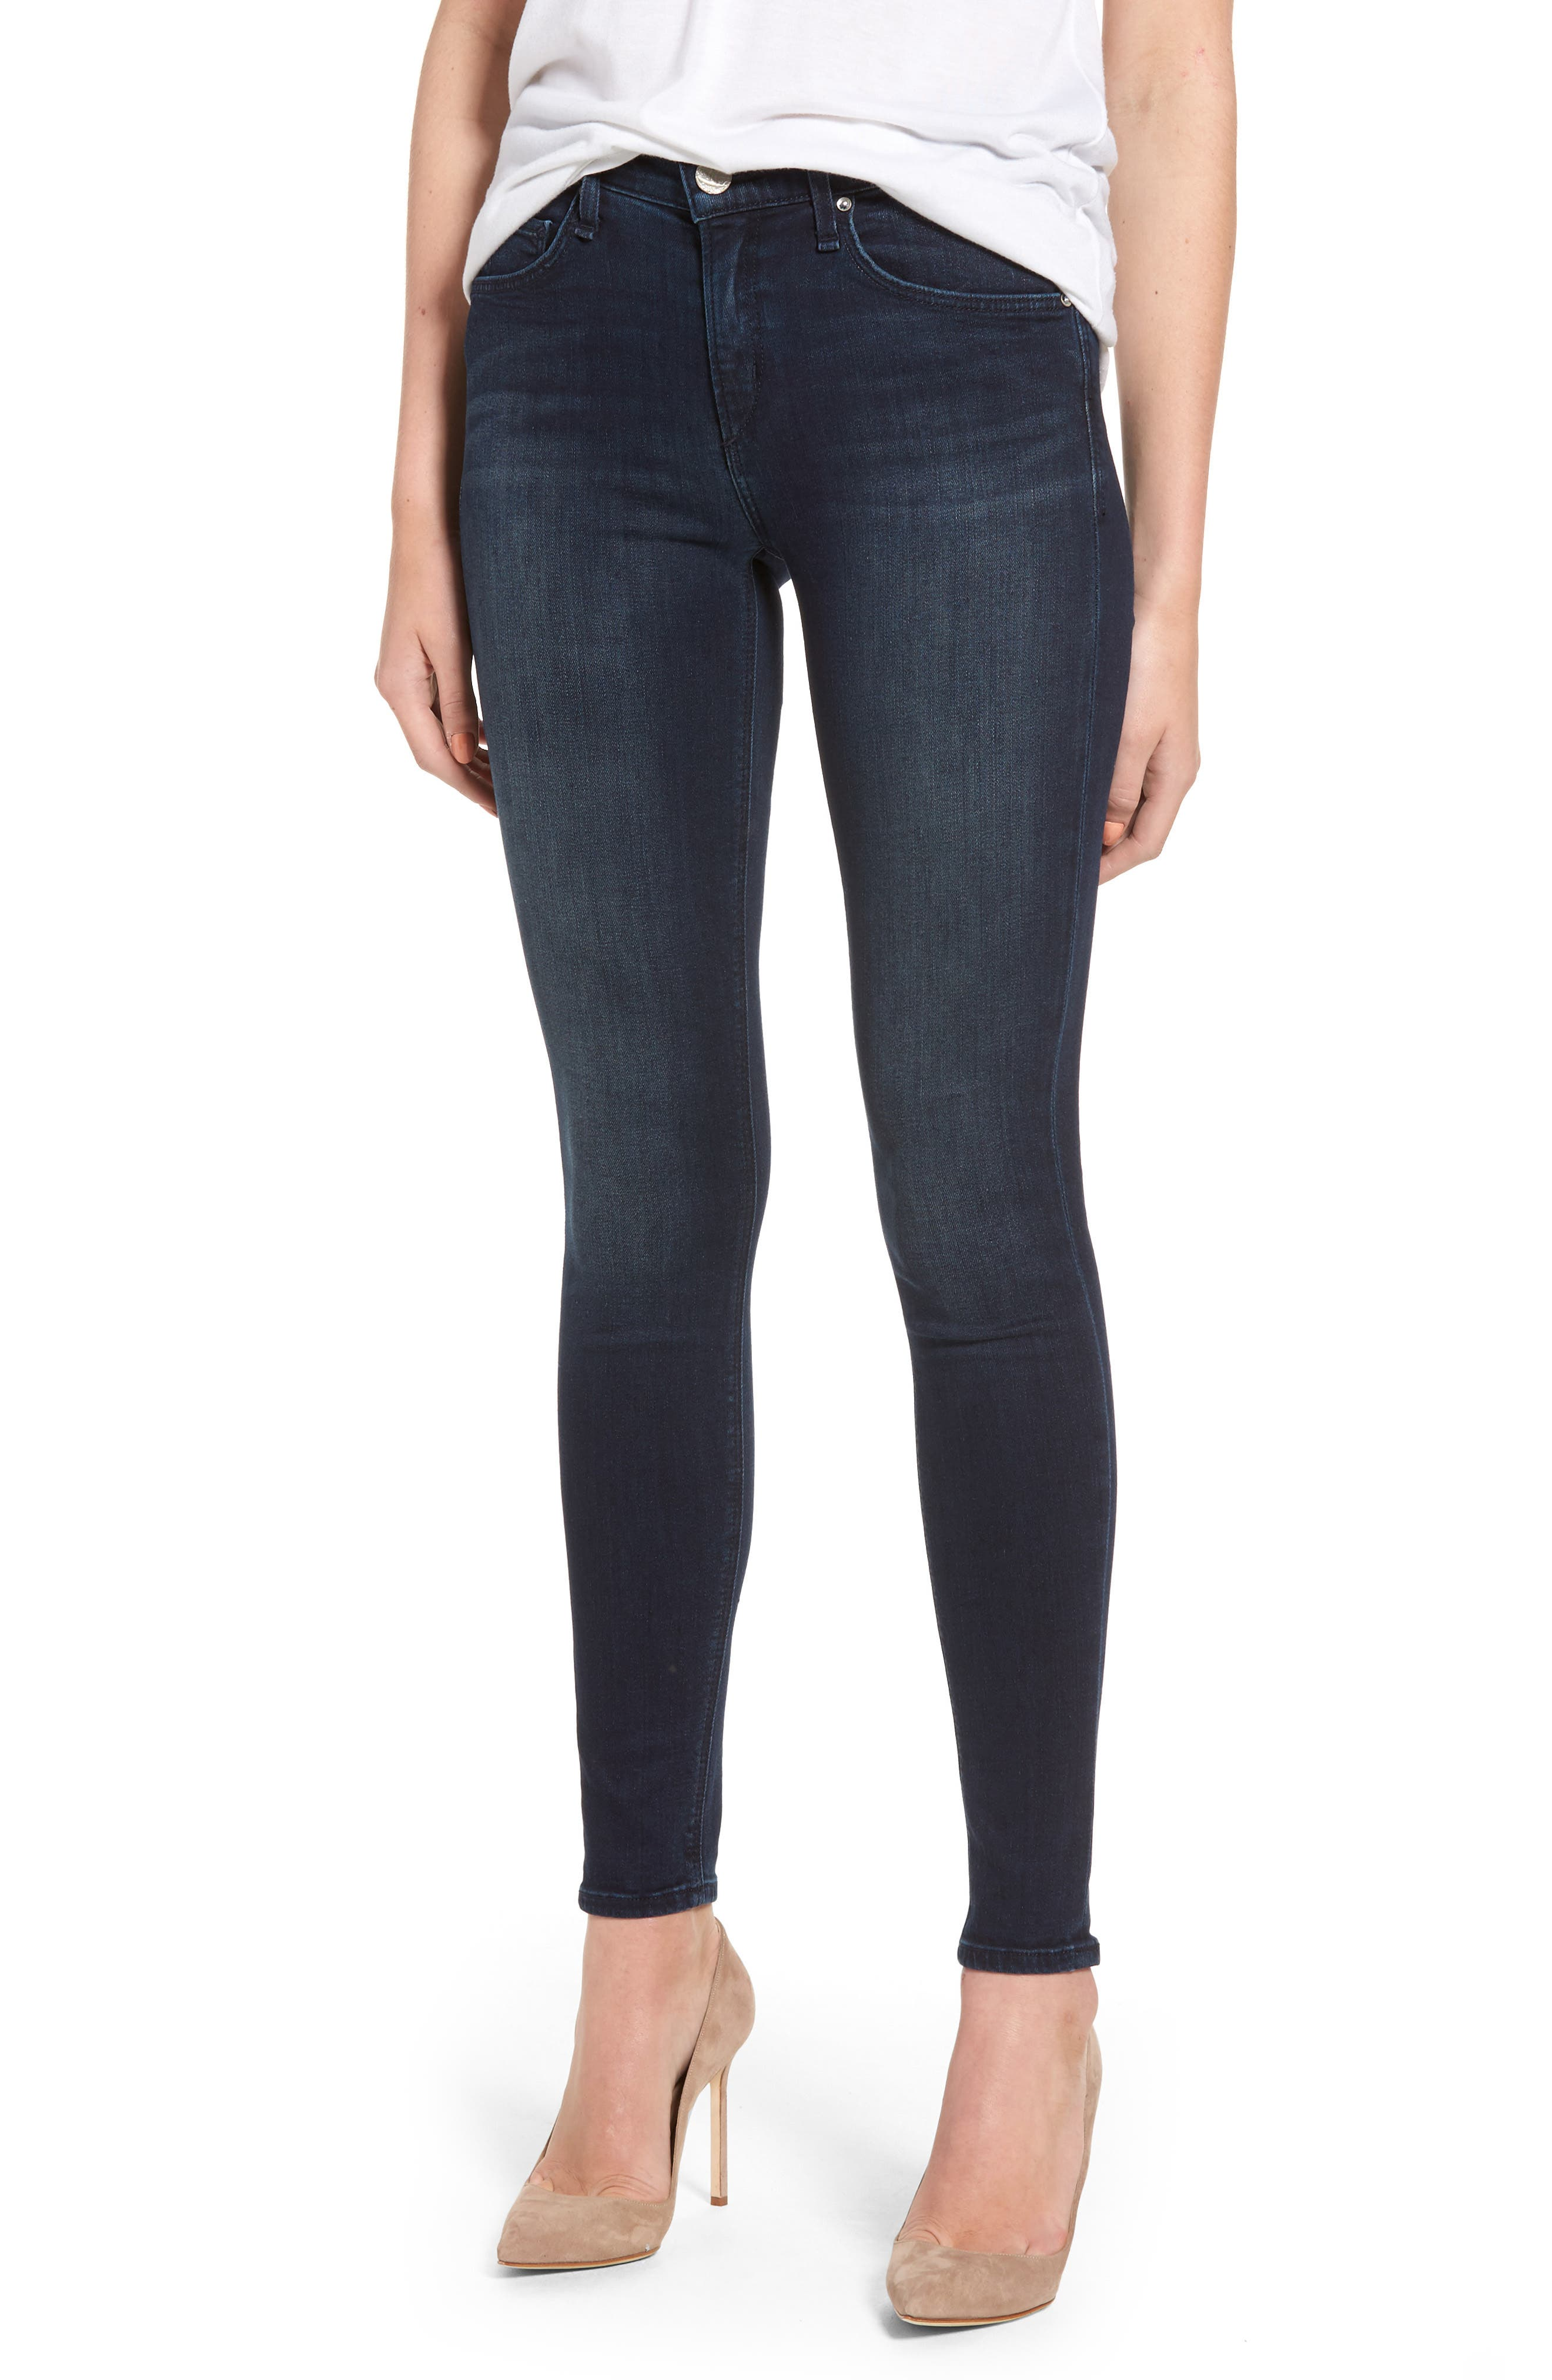 Newton Skinny Jeans,                         Main,                         color,